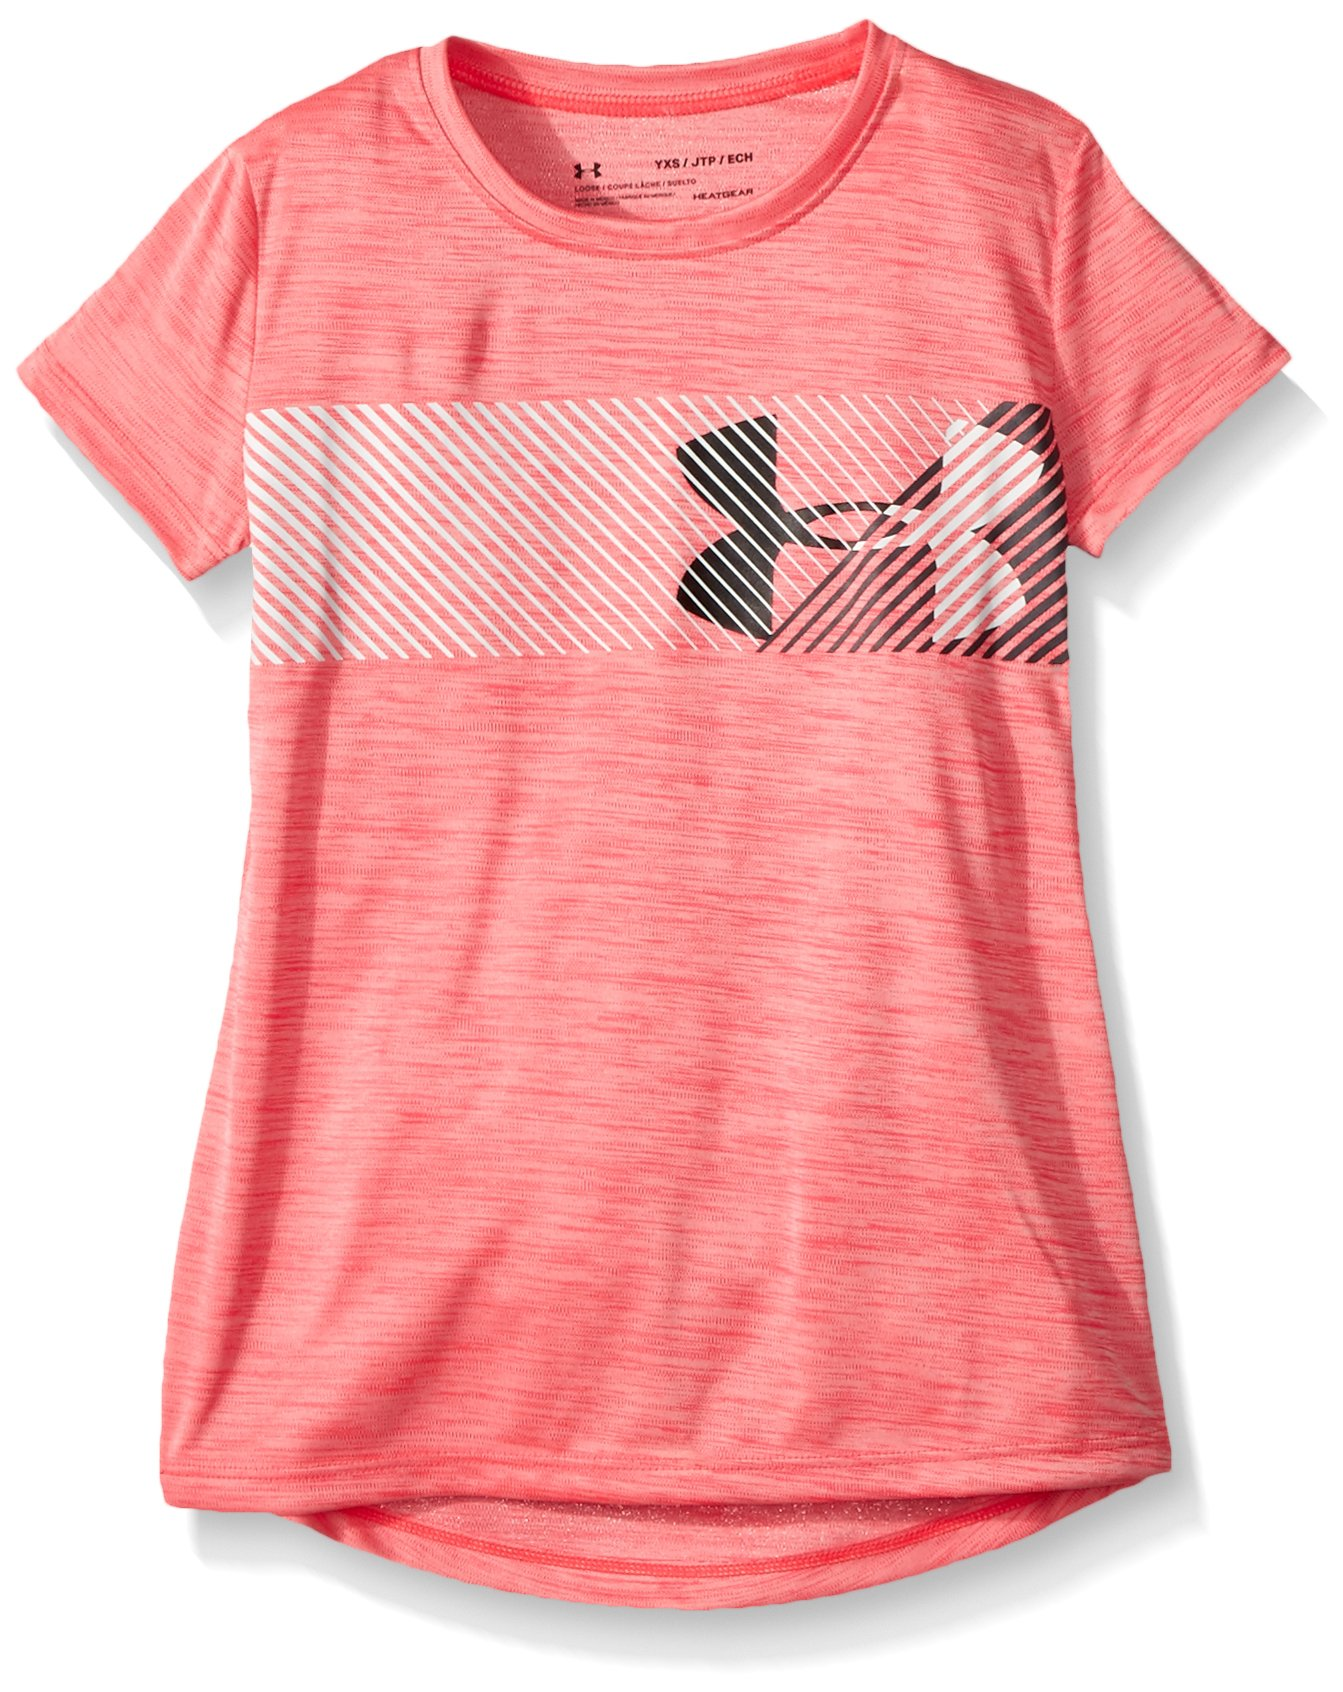 Under Armour Girls' Hybrid Big Logo T-Shirt, Penta Pink /Stealth Gray, Youth Small